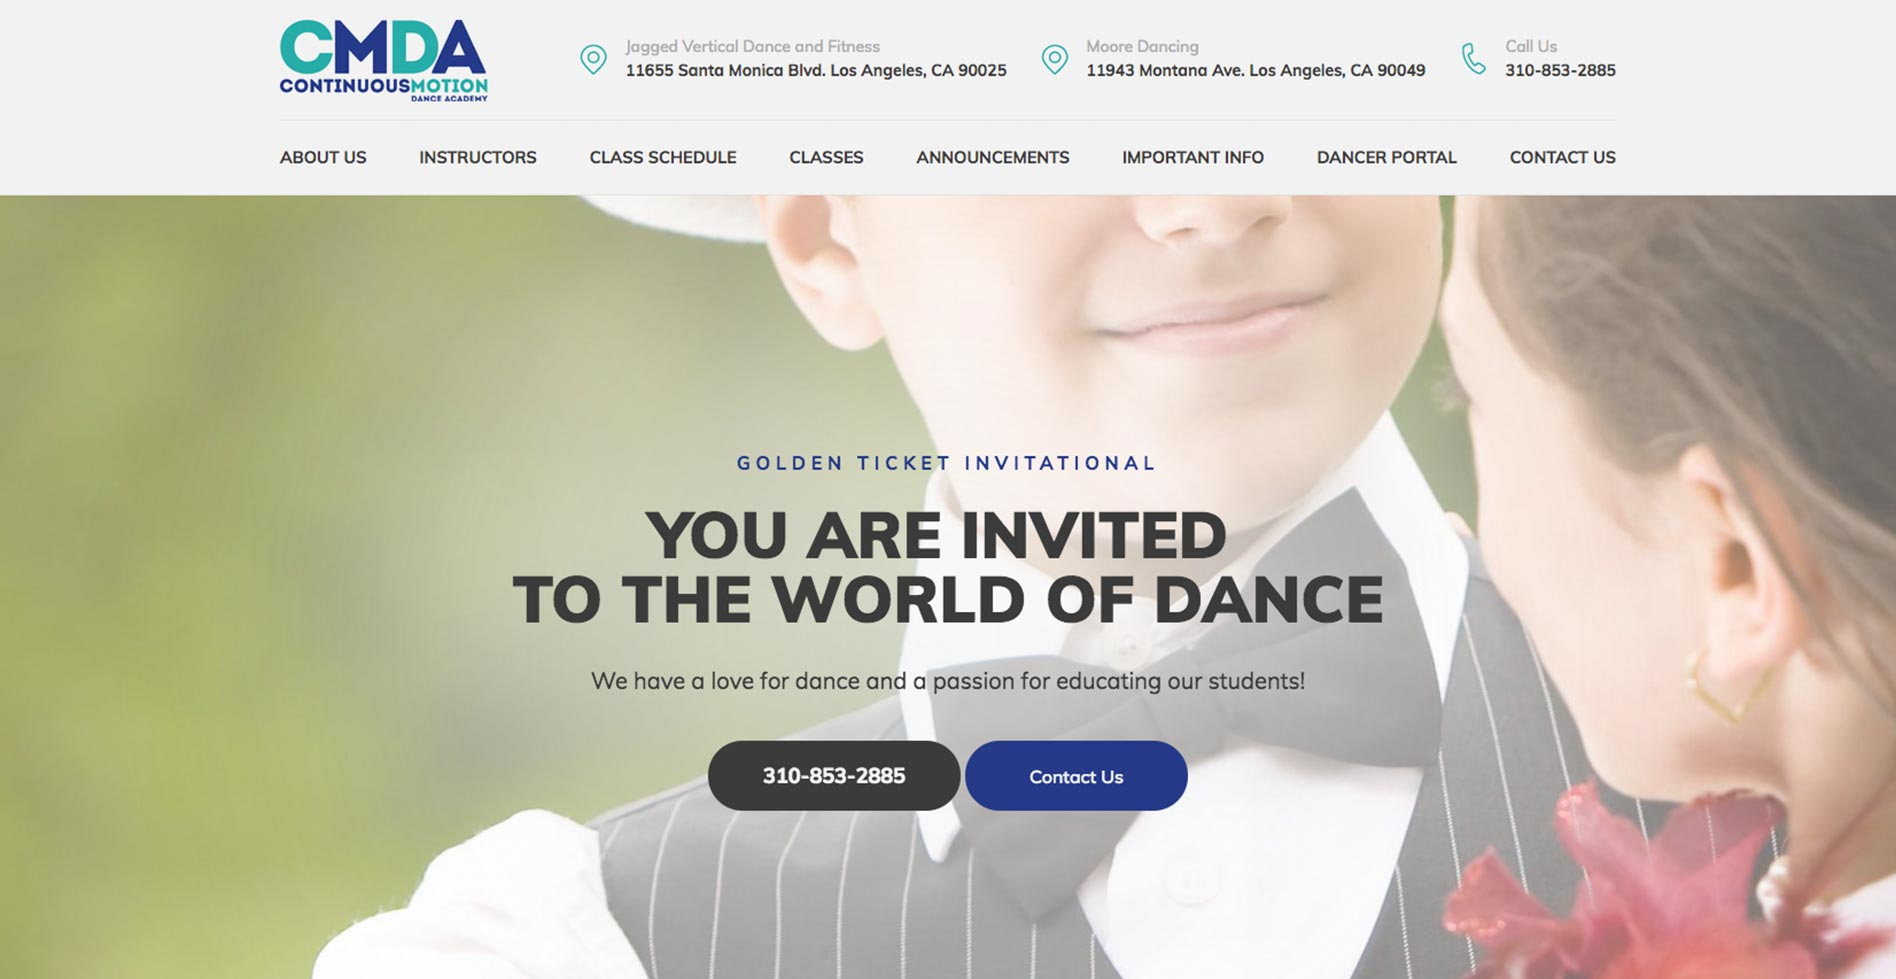 Continuous Motion Dance Academy